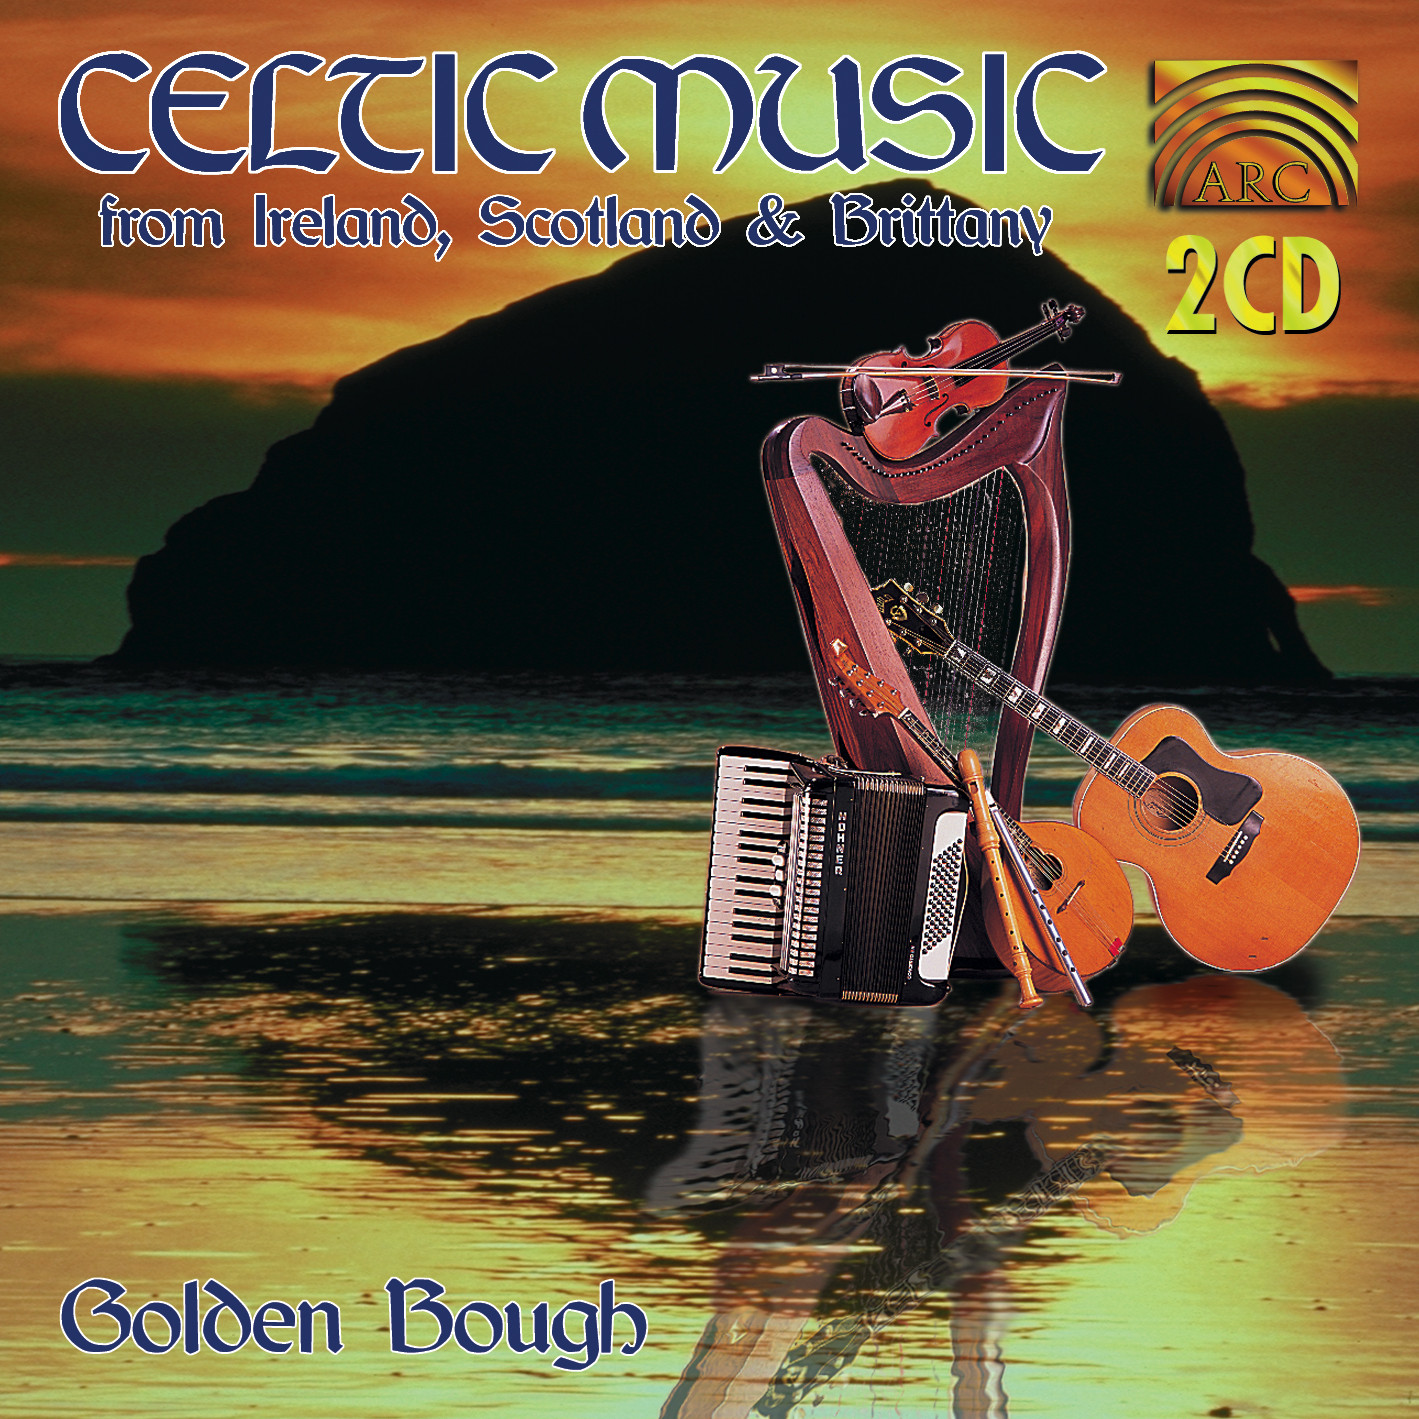 EUCD1458 Celtic Music from Ireland, Scotland & Brittany